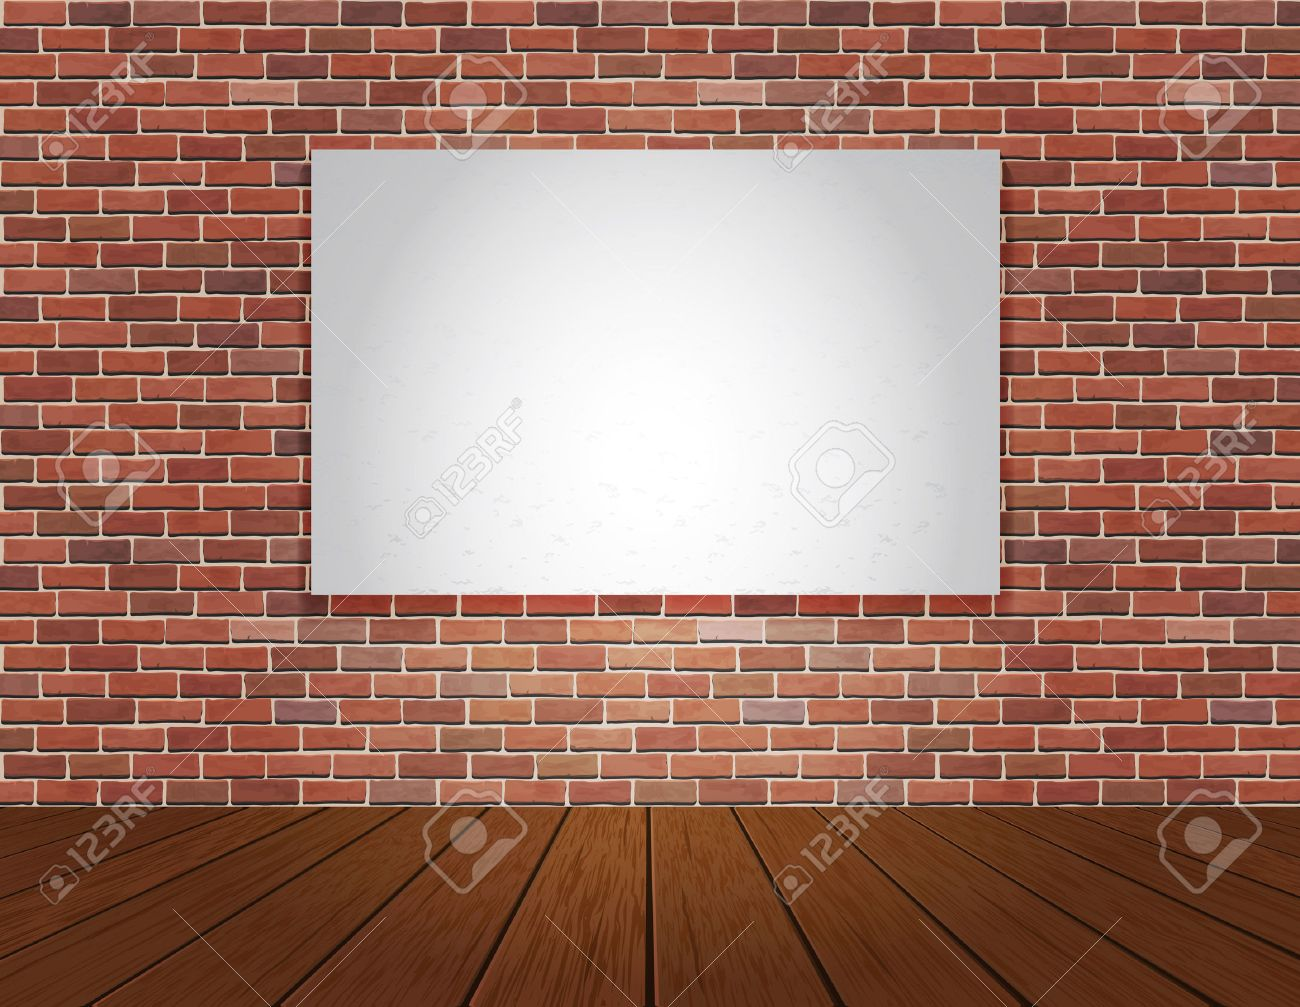 Red brick wall and wood floor background. Vector illustration. Stock Vector - 32051029